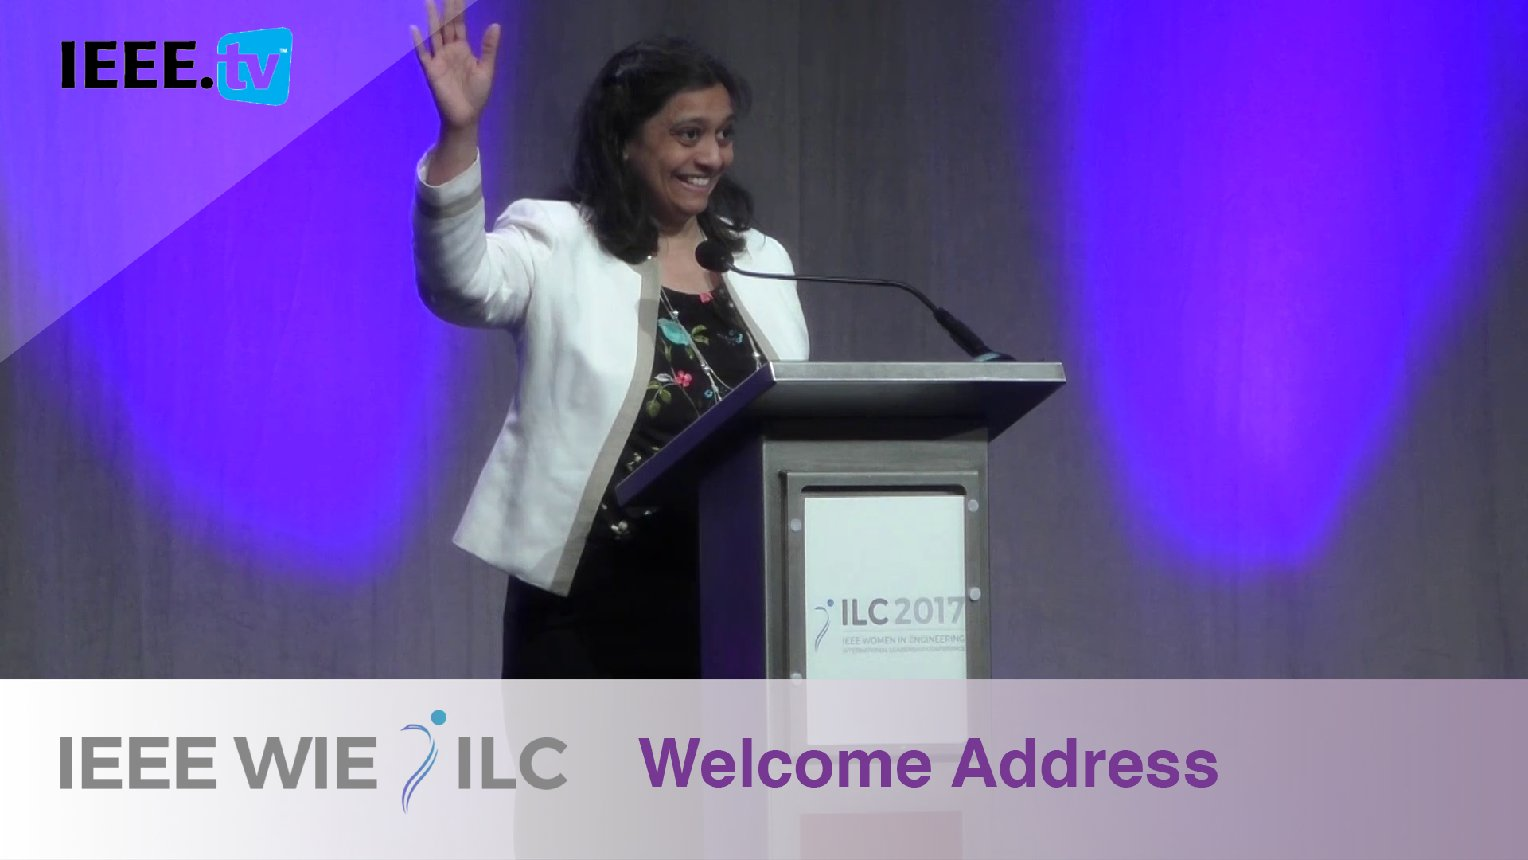 Welcome Address by Nita Patel - IEEE WIE ILC 2017